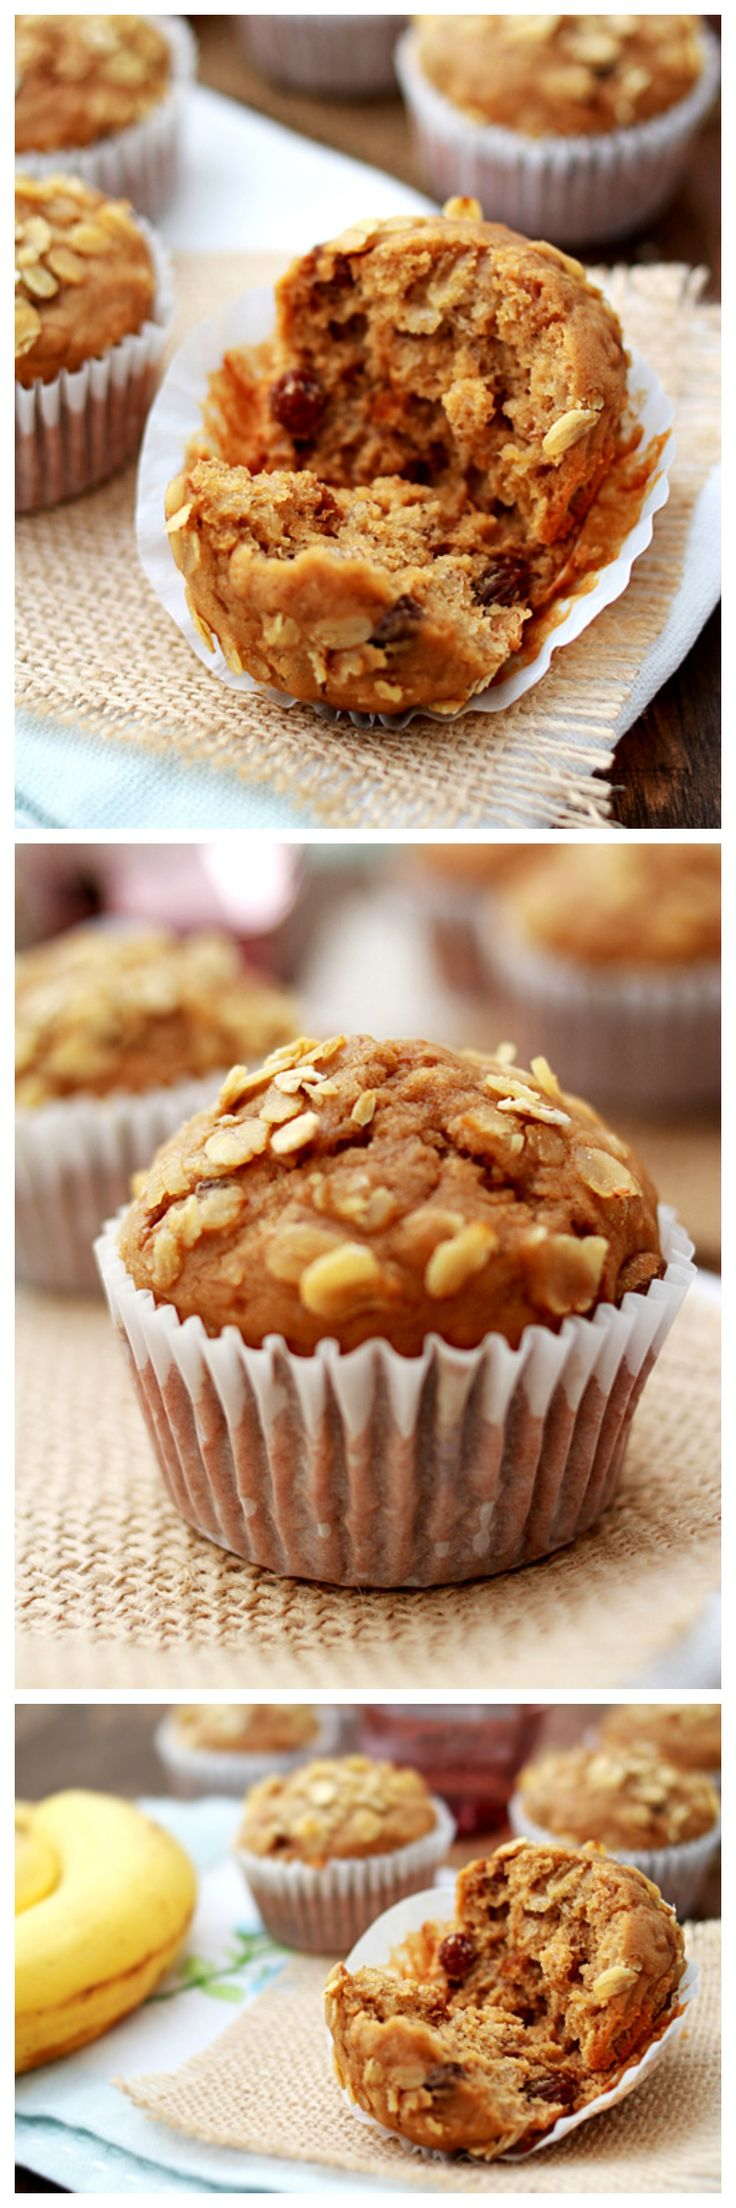 Banana Oatmeal Raisin Muffins | Recipe | Oatmeal Raisins, Oatmeal and ...